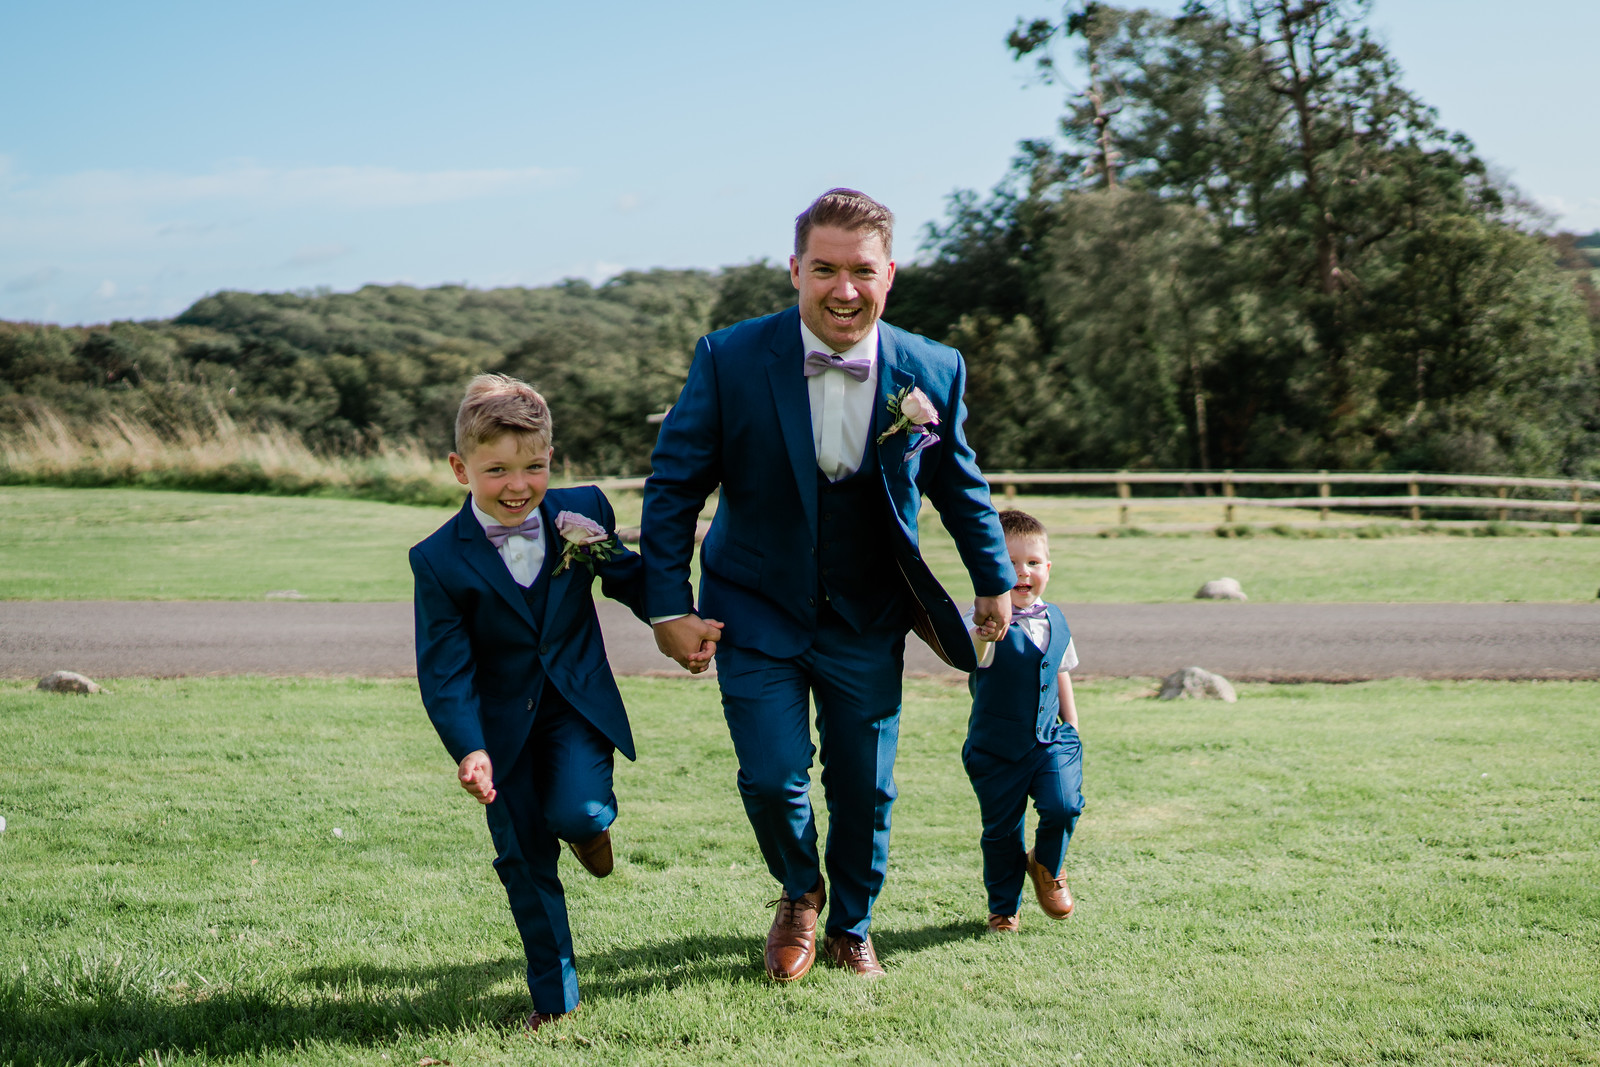 Groom and his sons run through the gardens of the venue